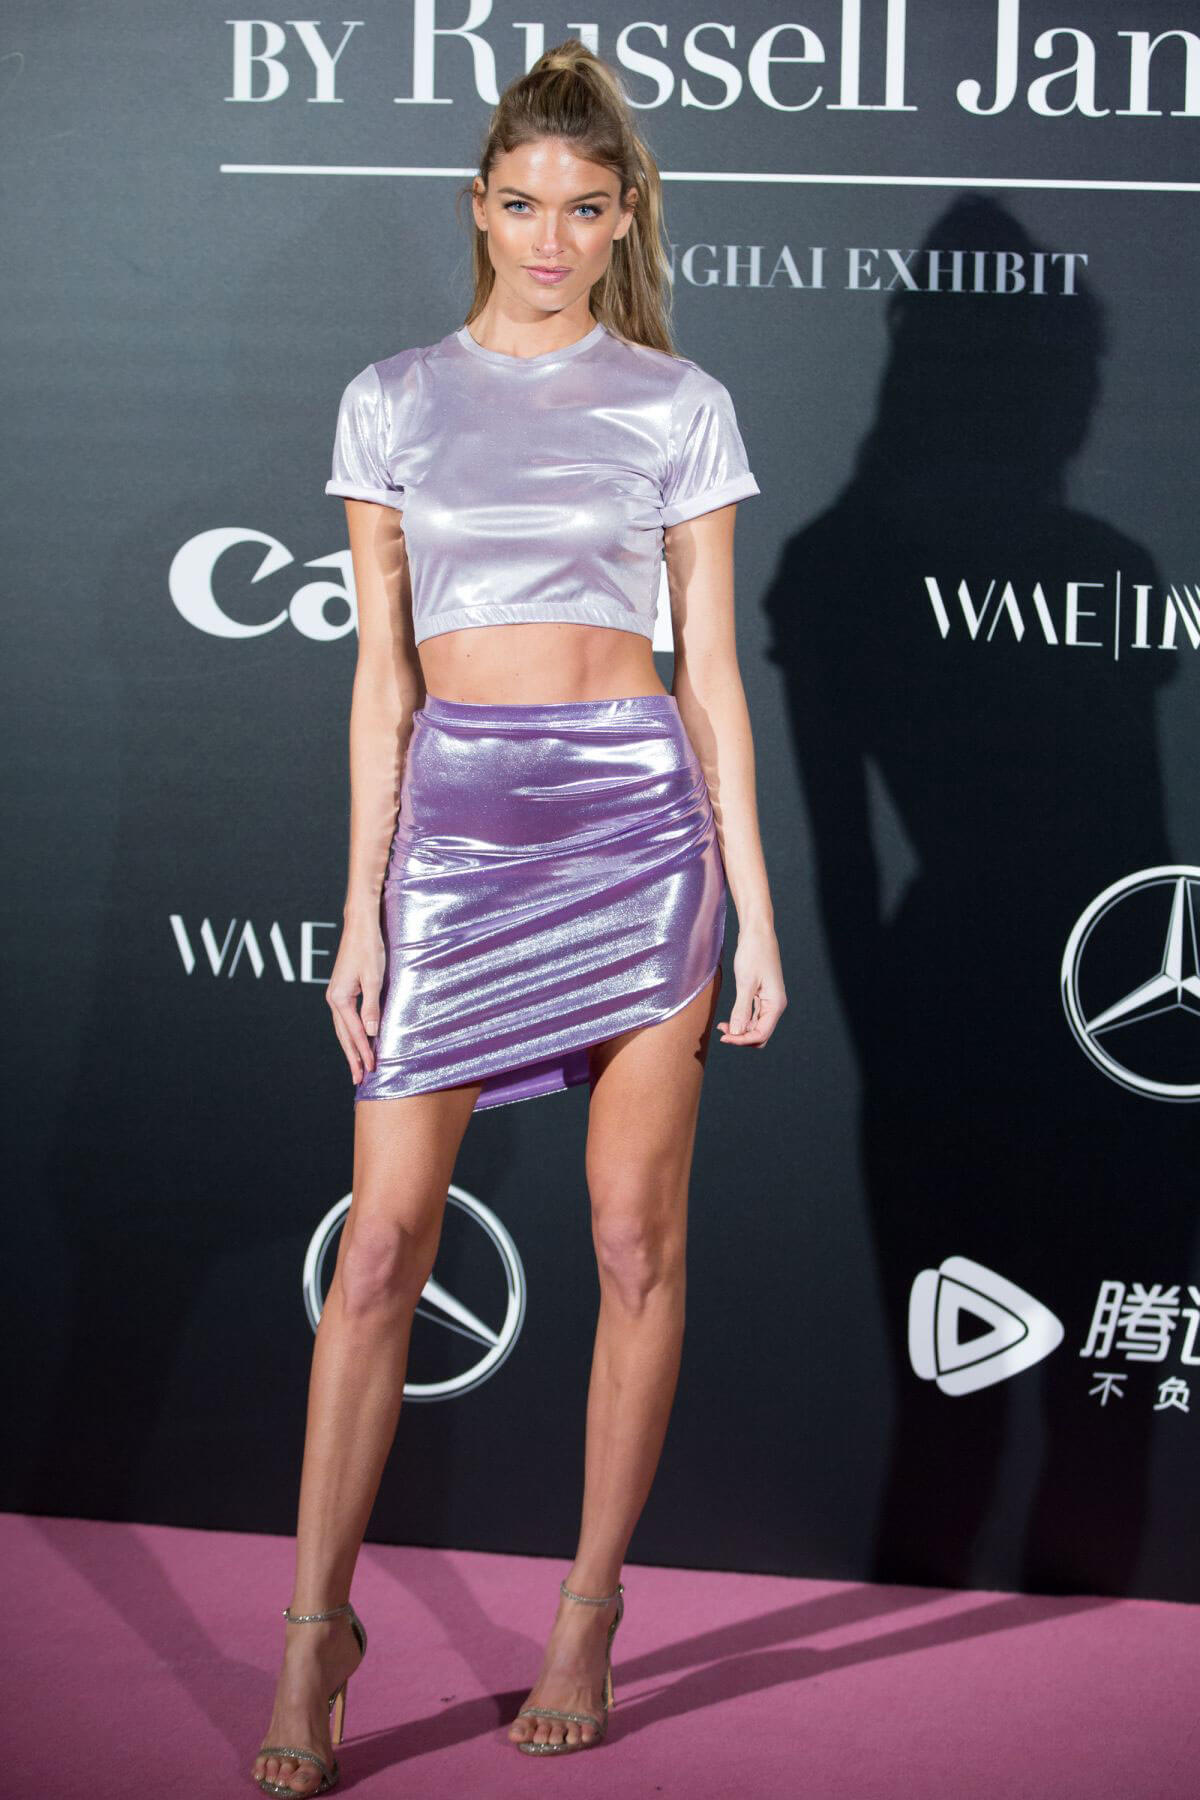 Martha Hunt Stills at Mercedes-Benz Backstage Secrets by Russell James Book Launch